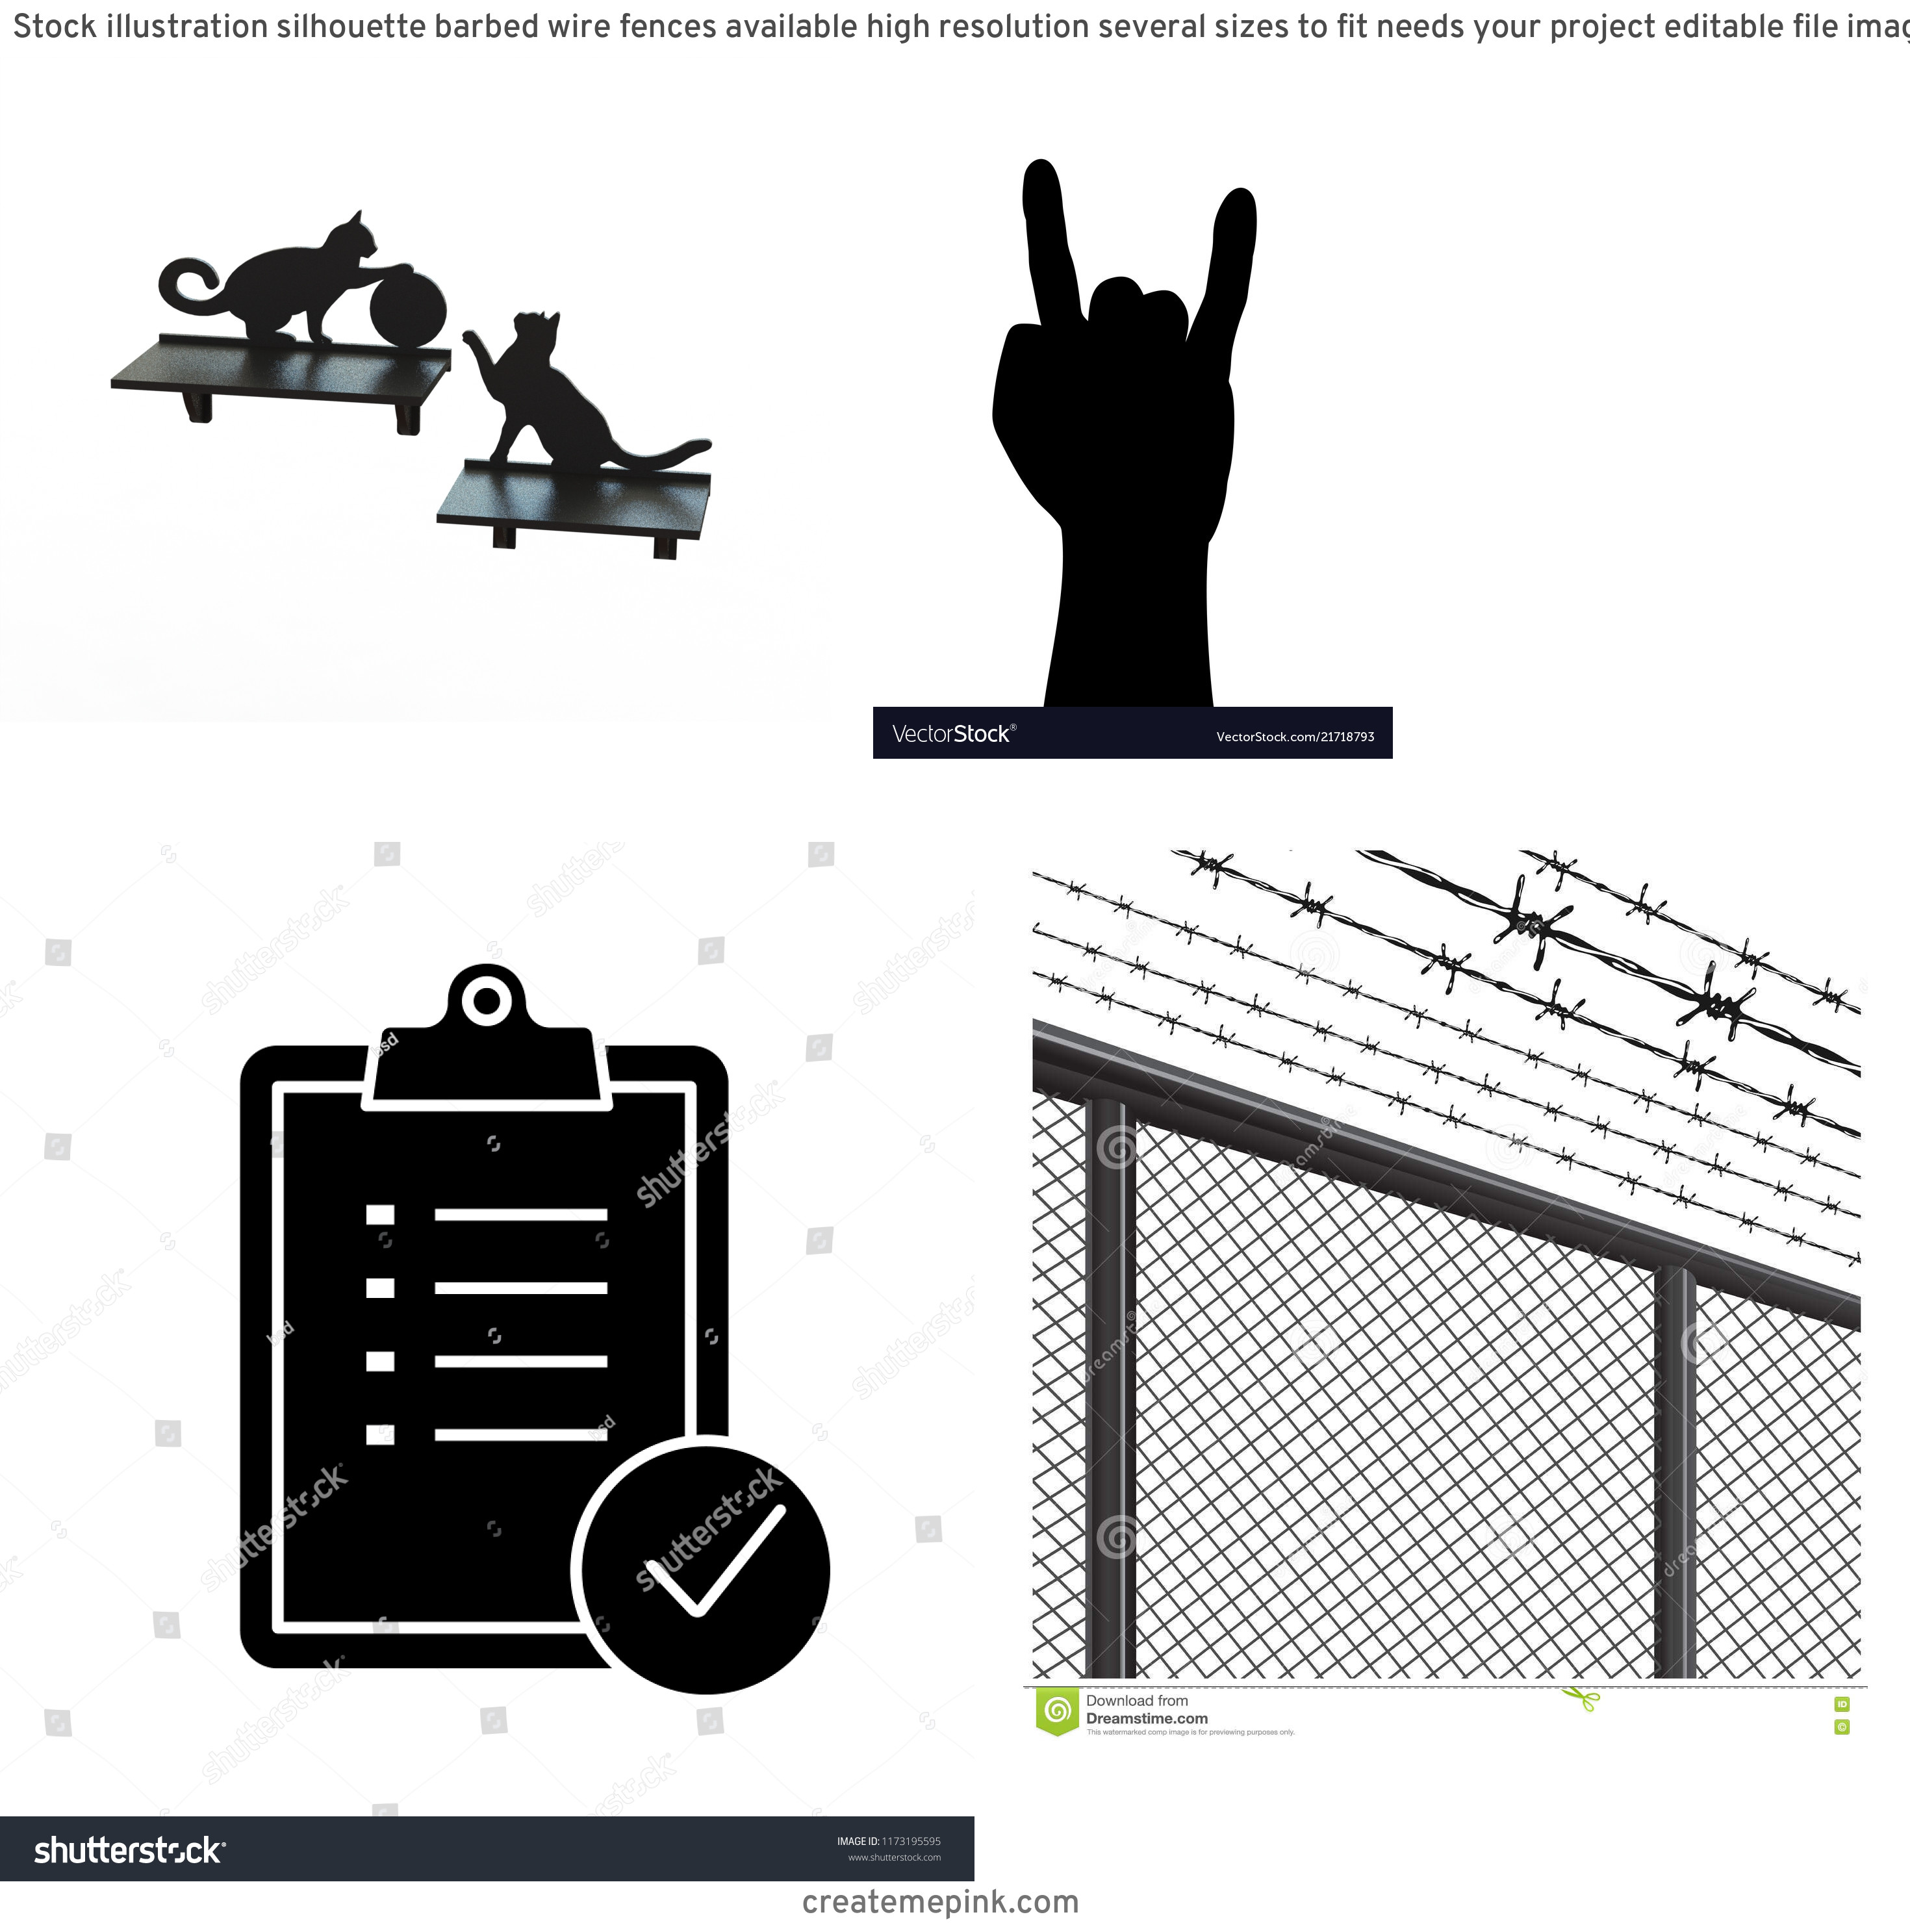 Vector Silhouette Metal Project: Stock Illustration Silhouette Barbed Wire Fences Available High Resolution Several Sizes To Fit Needs Your Project Editable File Image